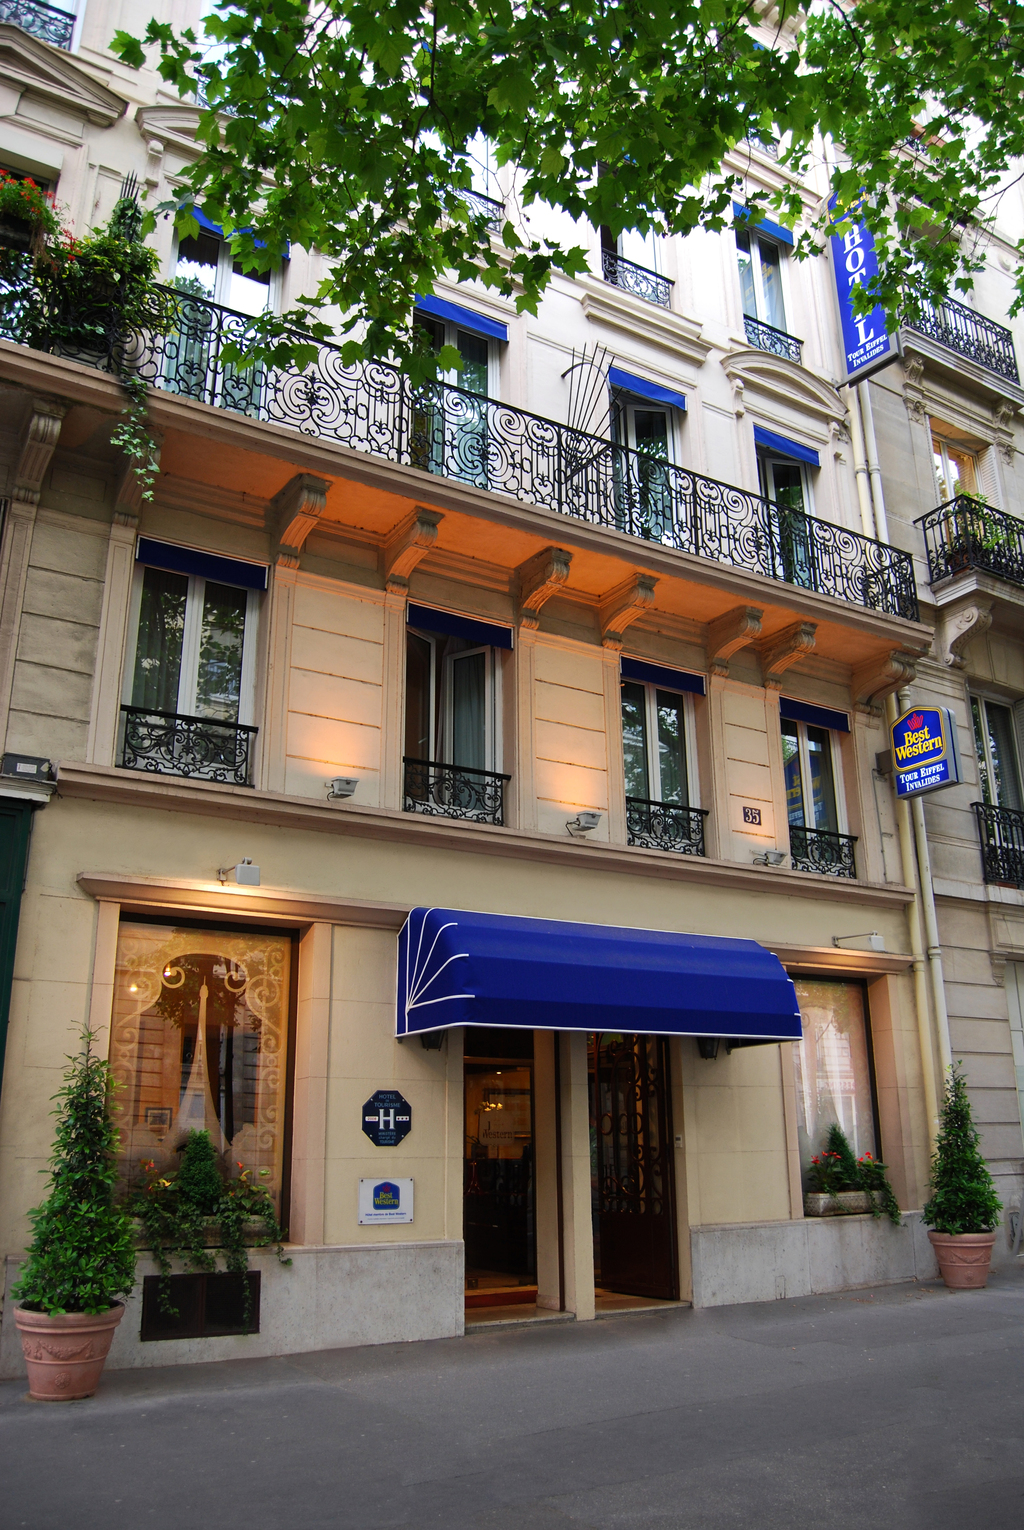 Hotel best western tour eiffel invalides paris 7e for Hotel best western paris